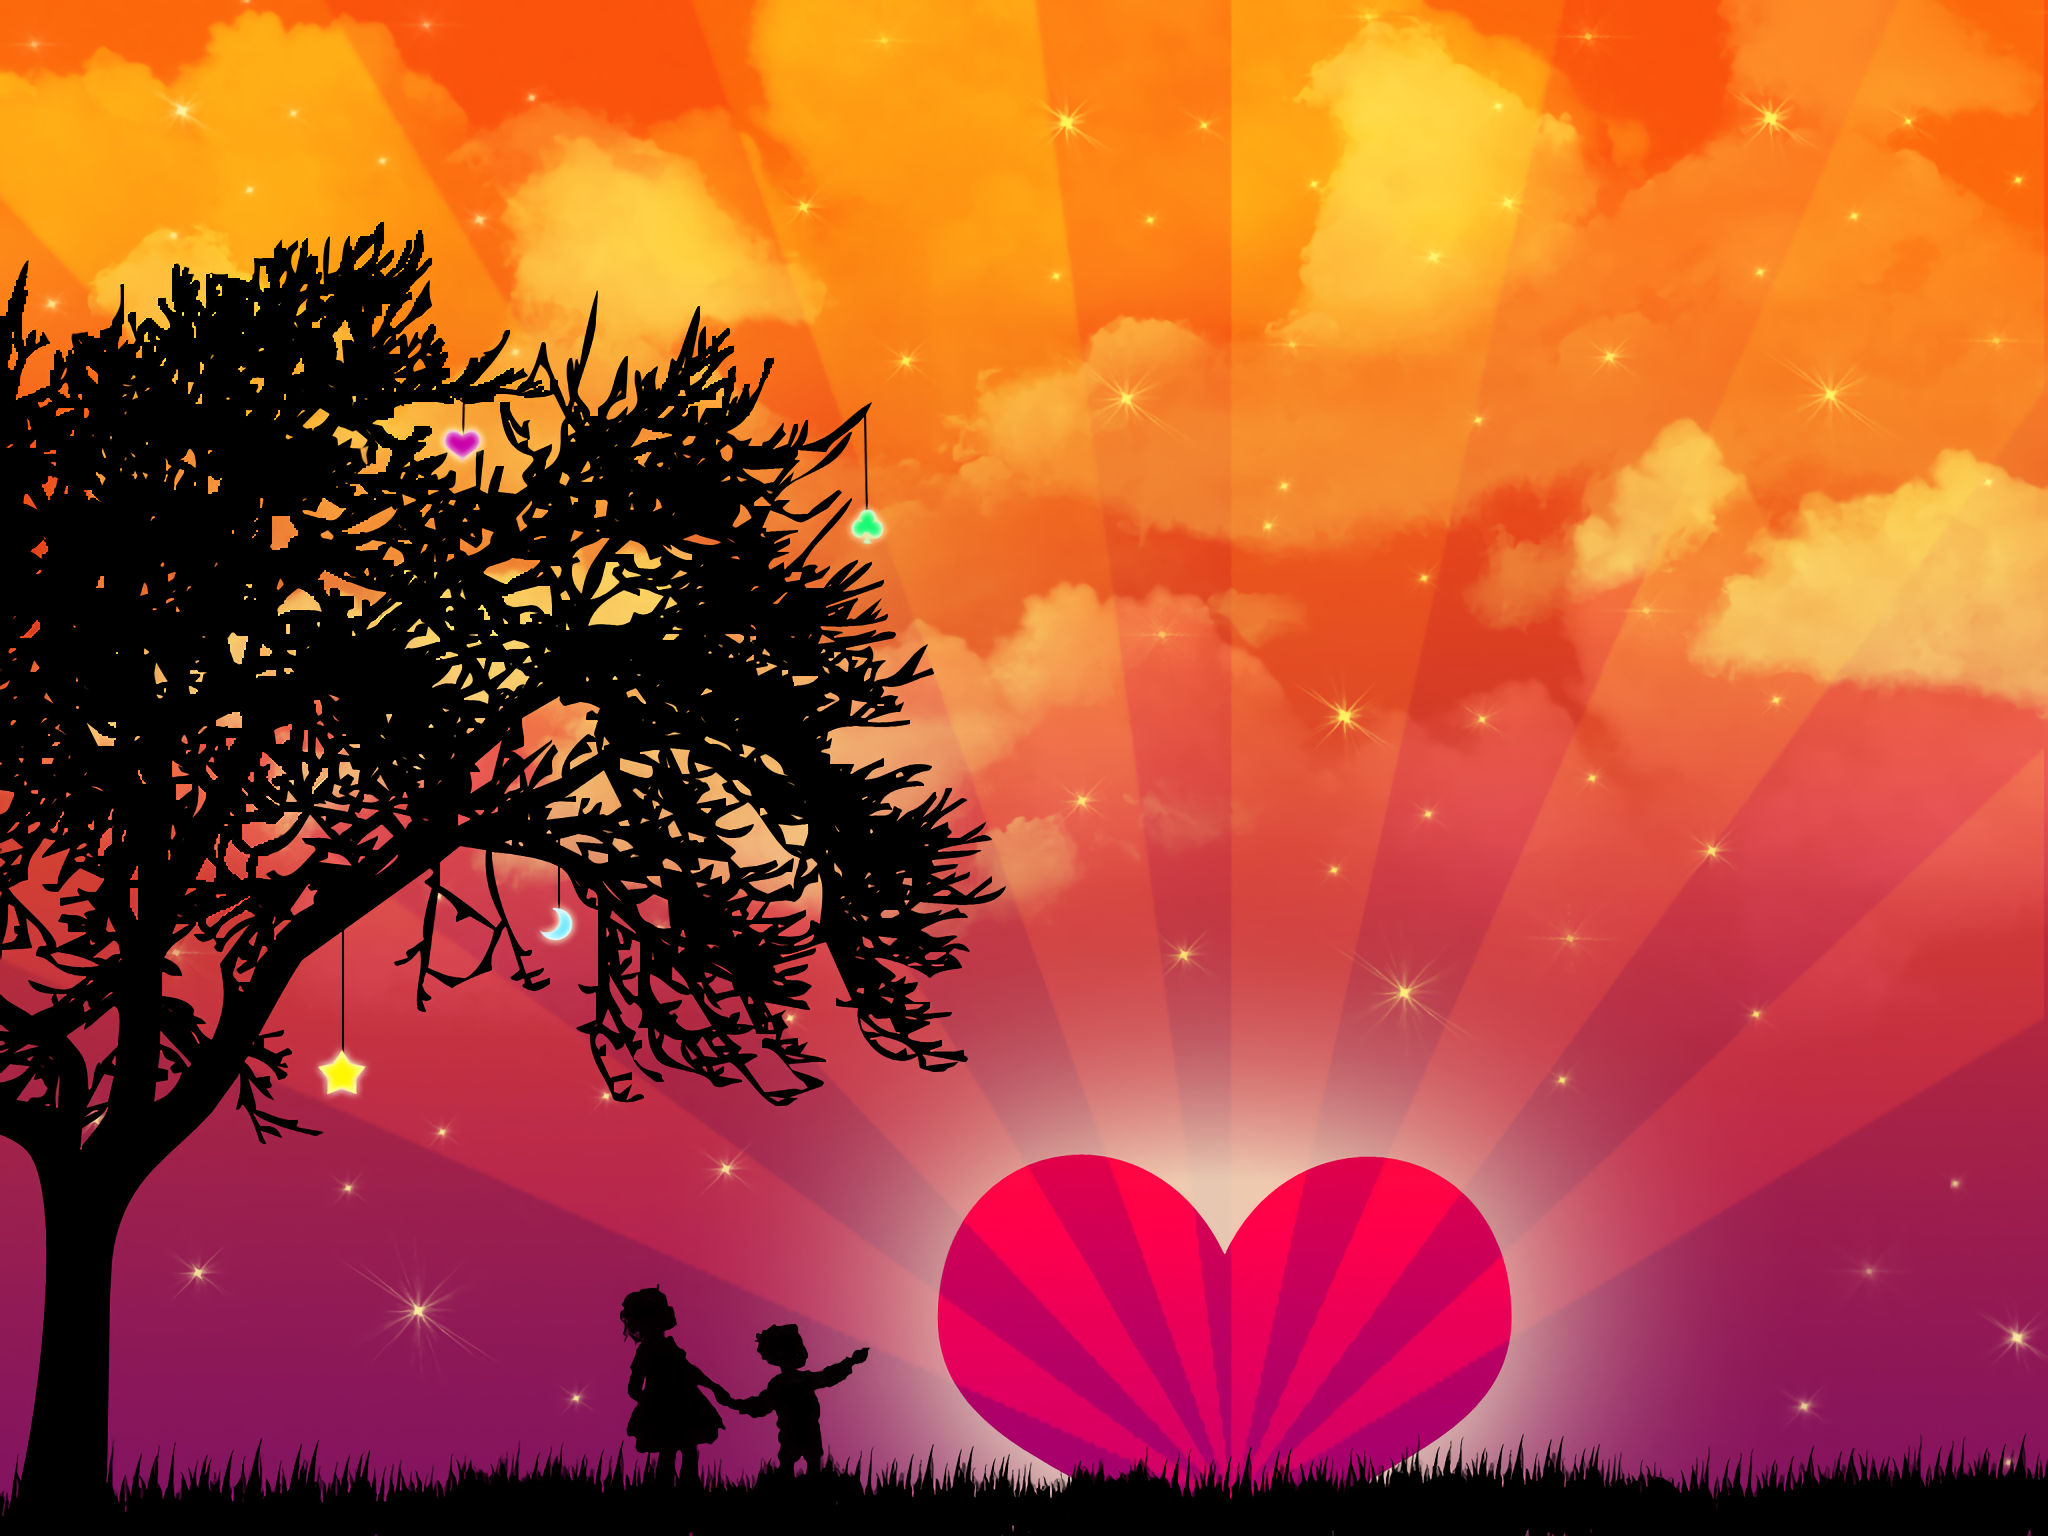 Cute Wallpapers For Desktop Background Full Screen Posted By Samantha Sellers